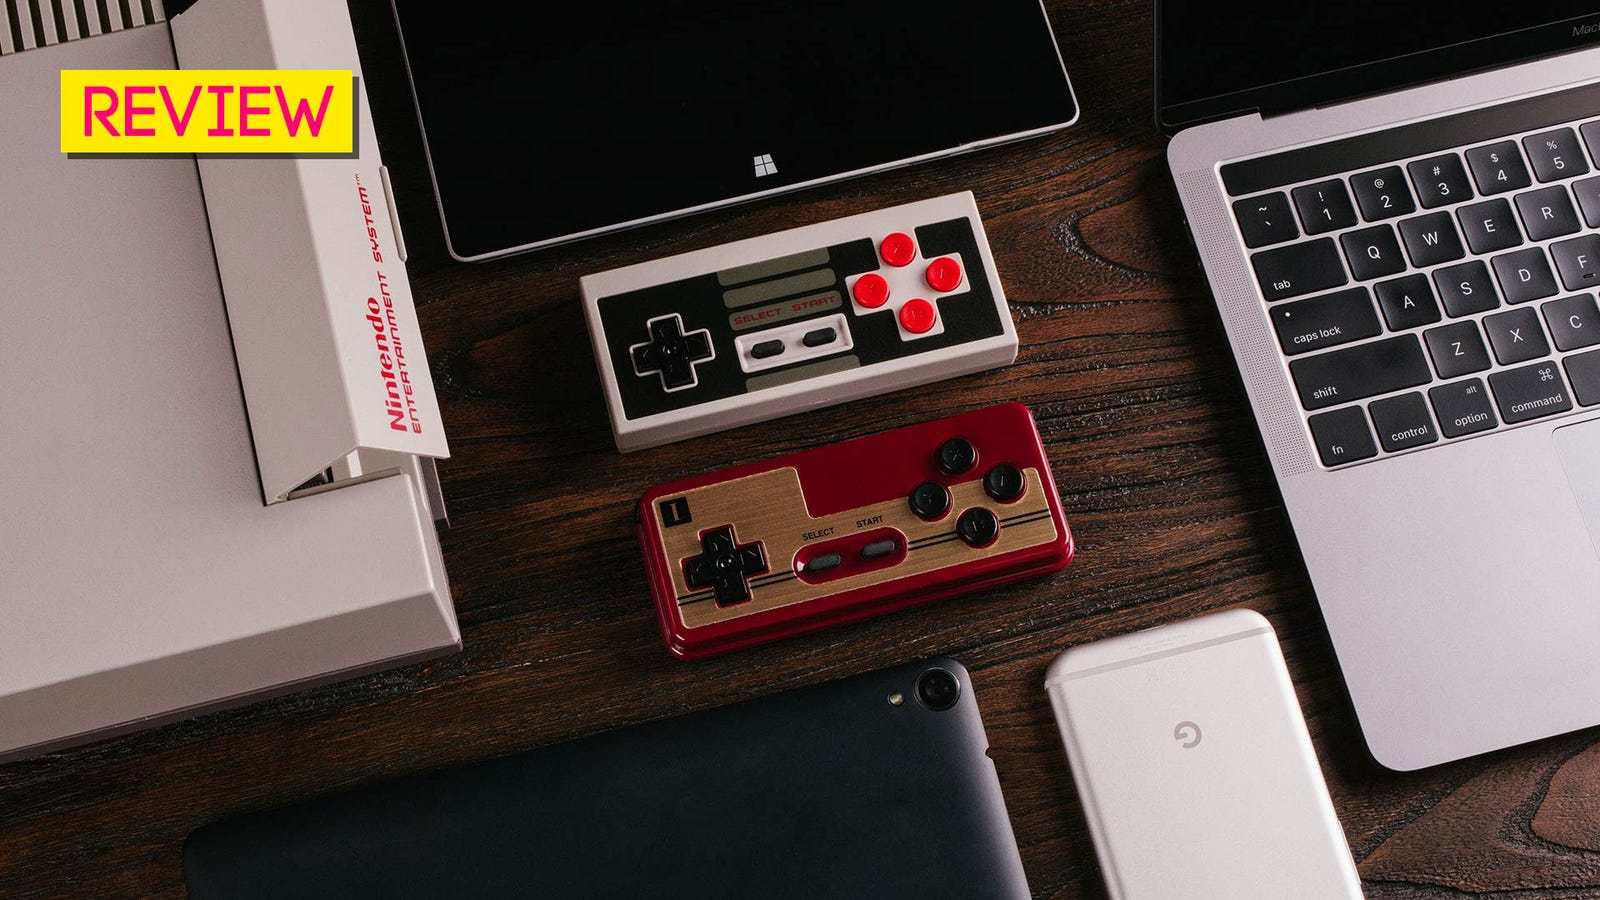 8bitdo Controllers The Kotaku Review Nes30 Pro Retro Bluetooth Controller For Switch Ios Android Pc Mac